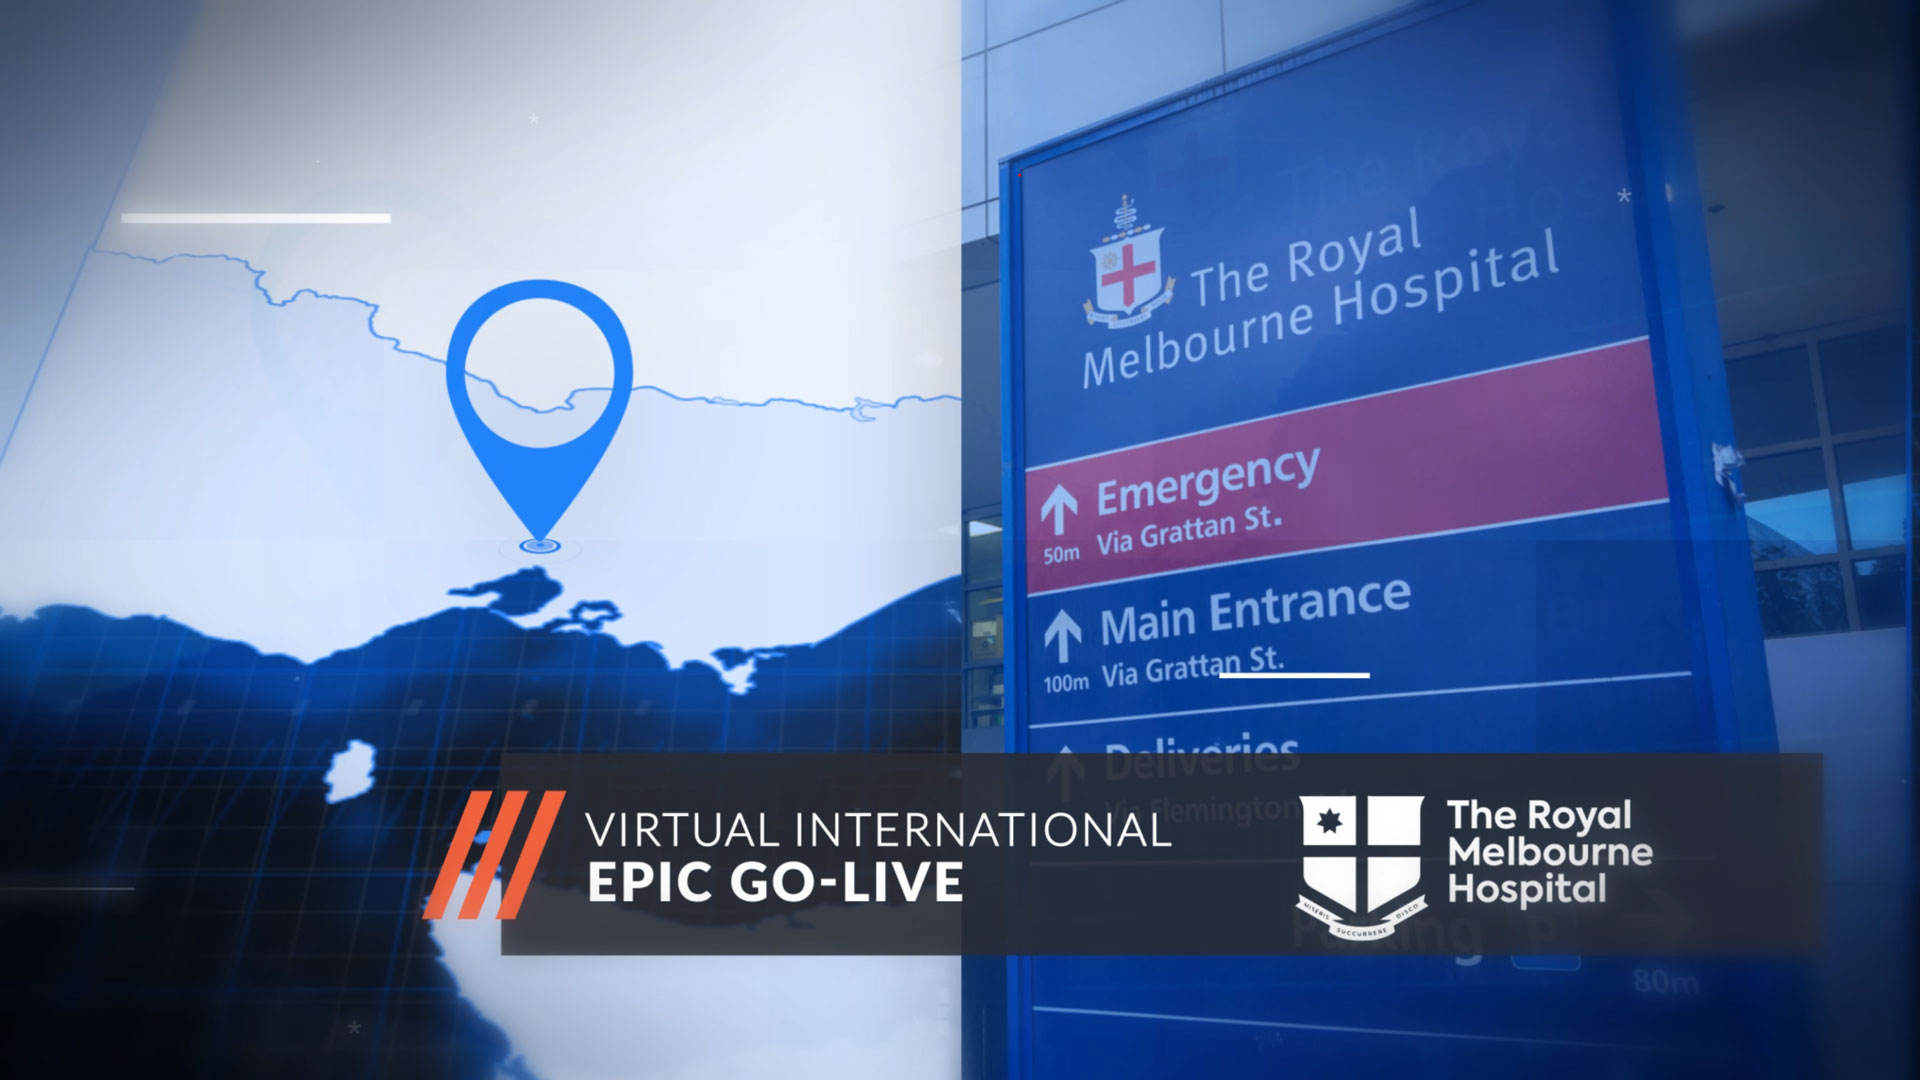 Case Study: Royal Melbourne Hospital Virtual International Epic Go-Live